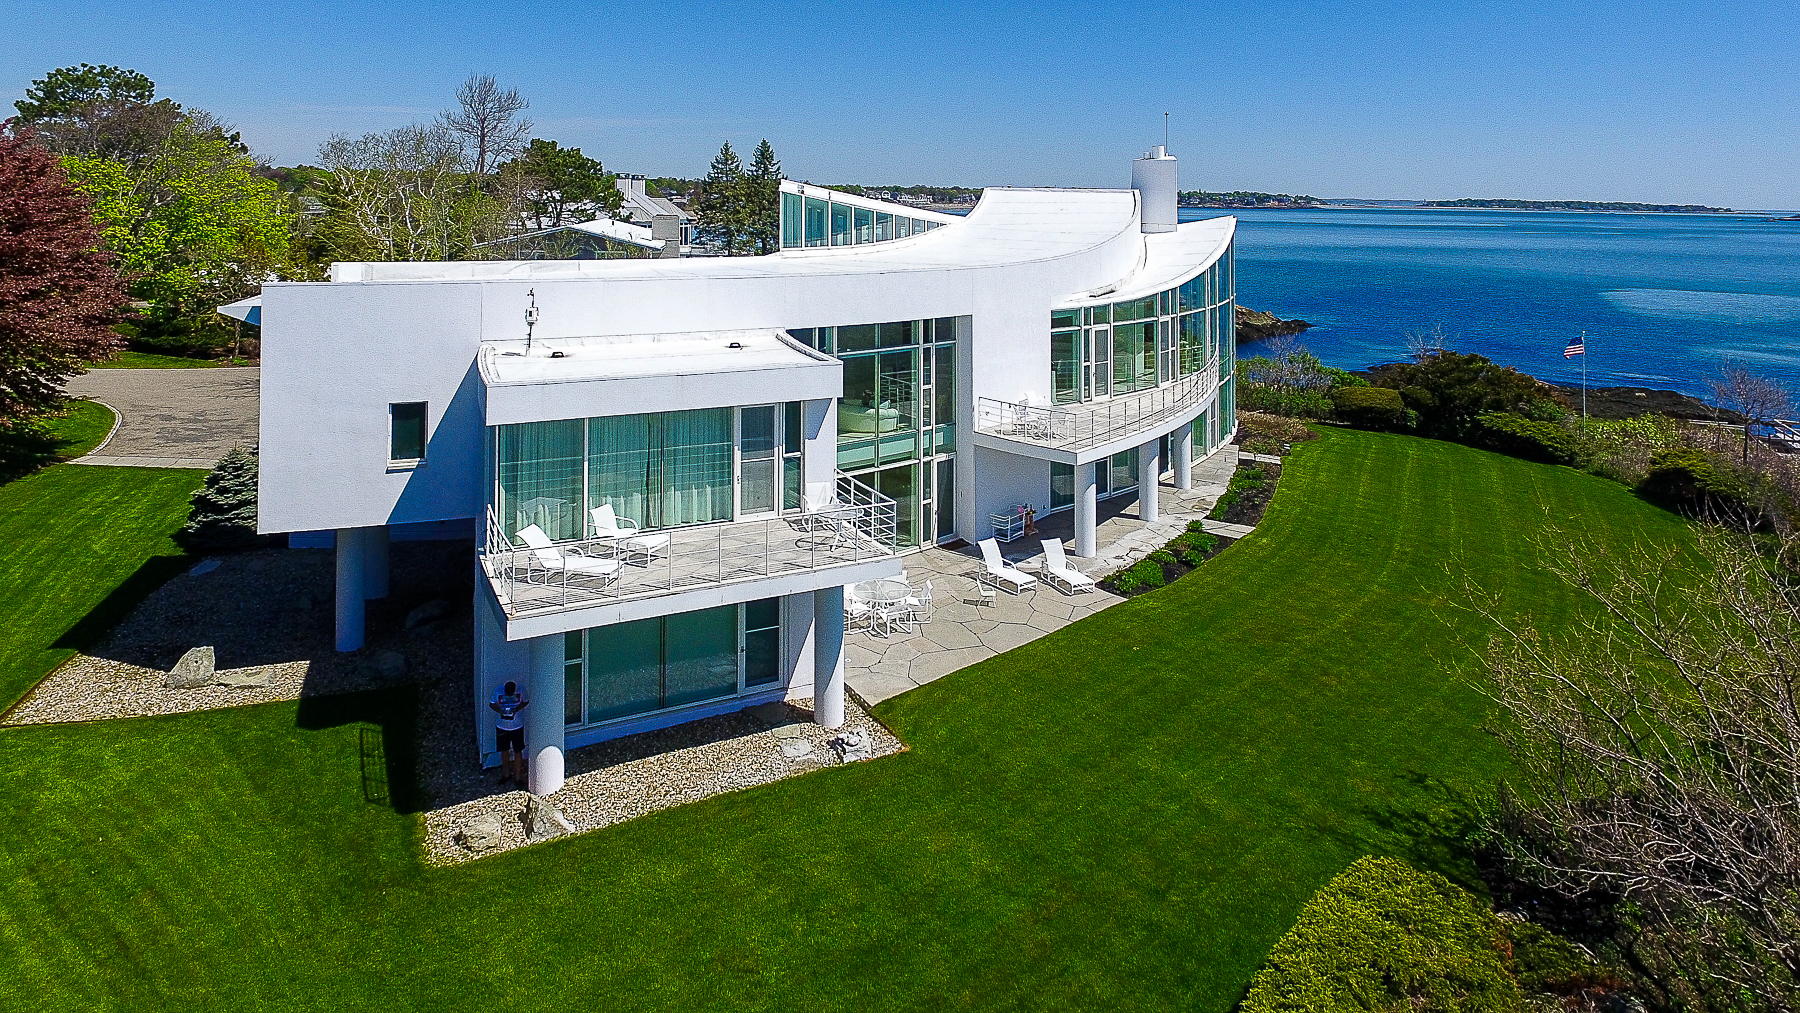 Single Family Home for Sale at Extraordinary Ocean Front Contemporary Home 45 Little's Point Swampscott, Massachusetts 01907 United States